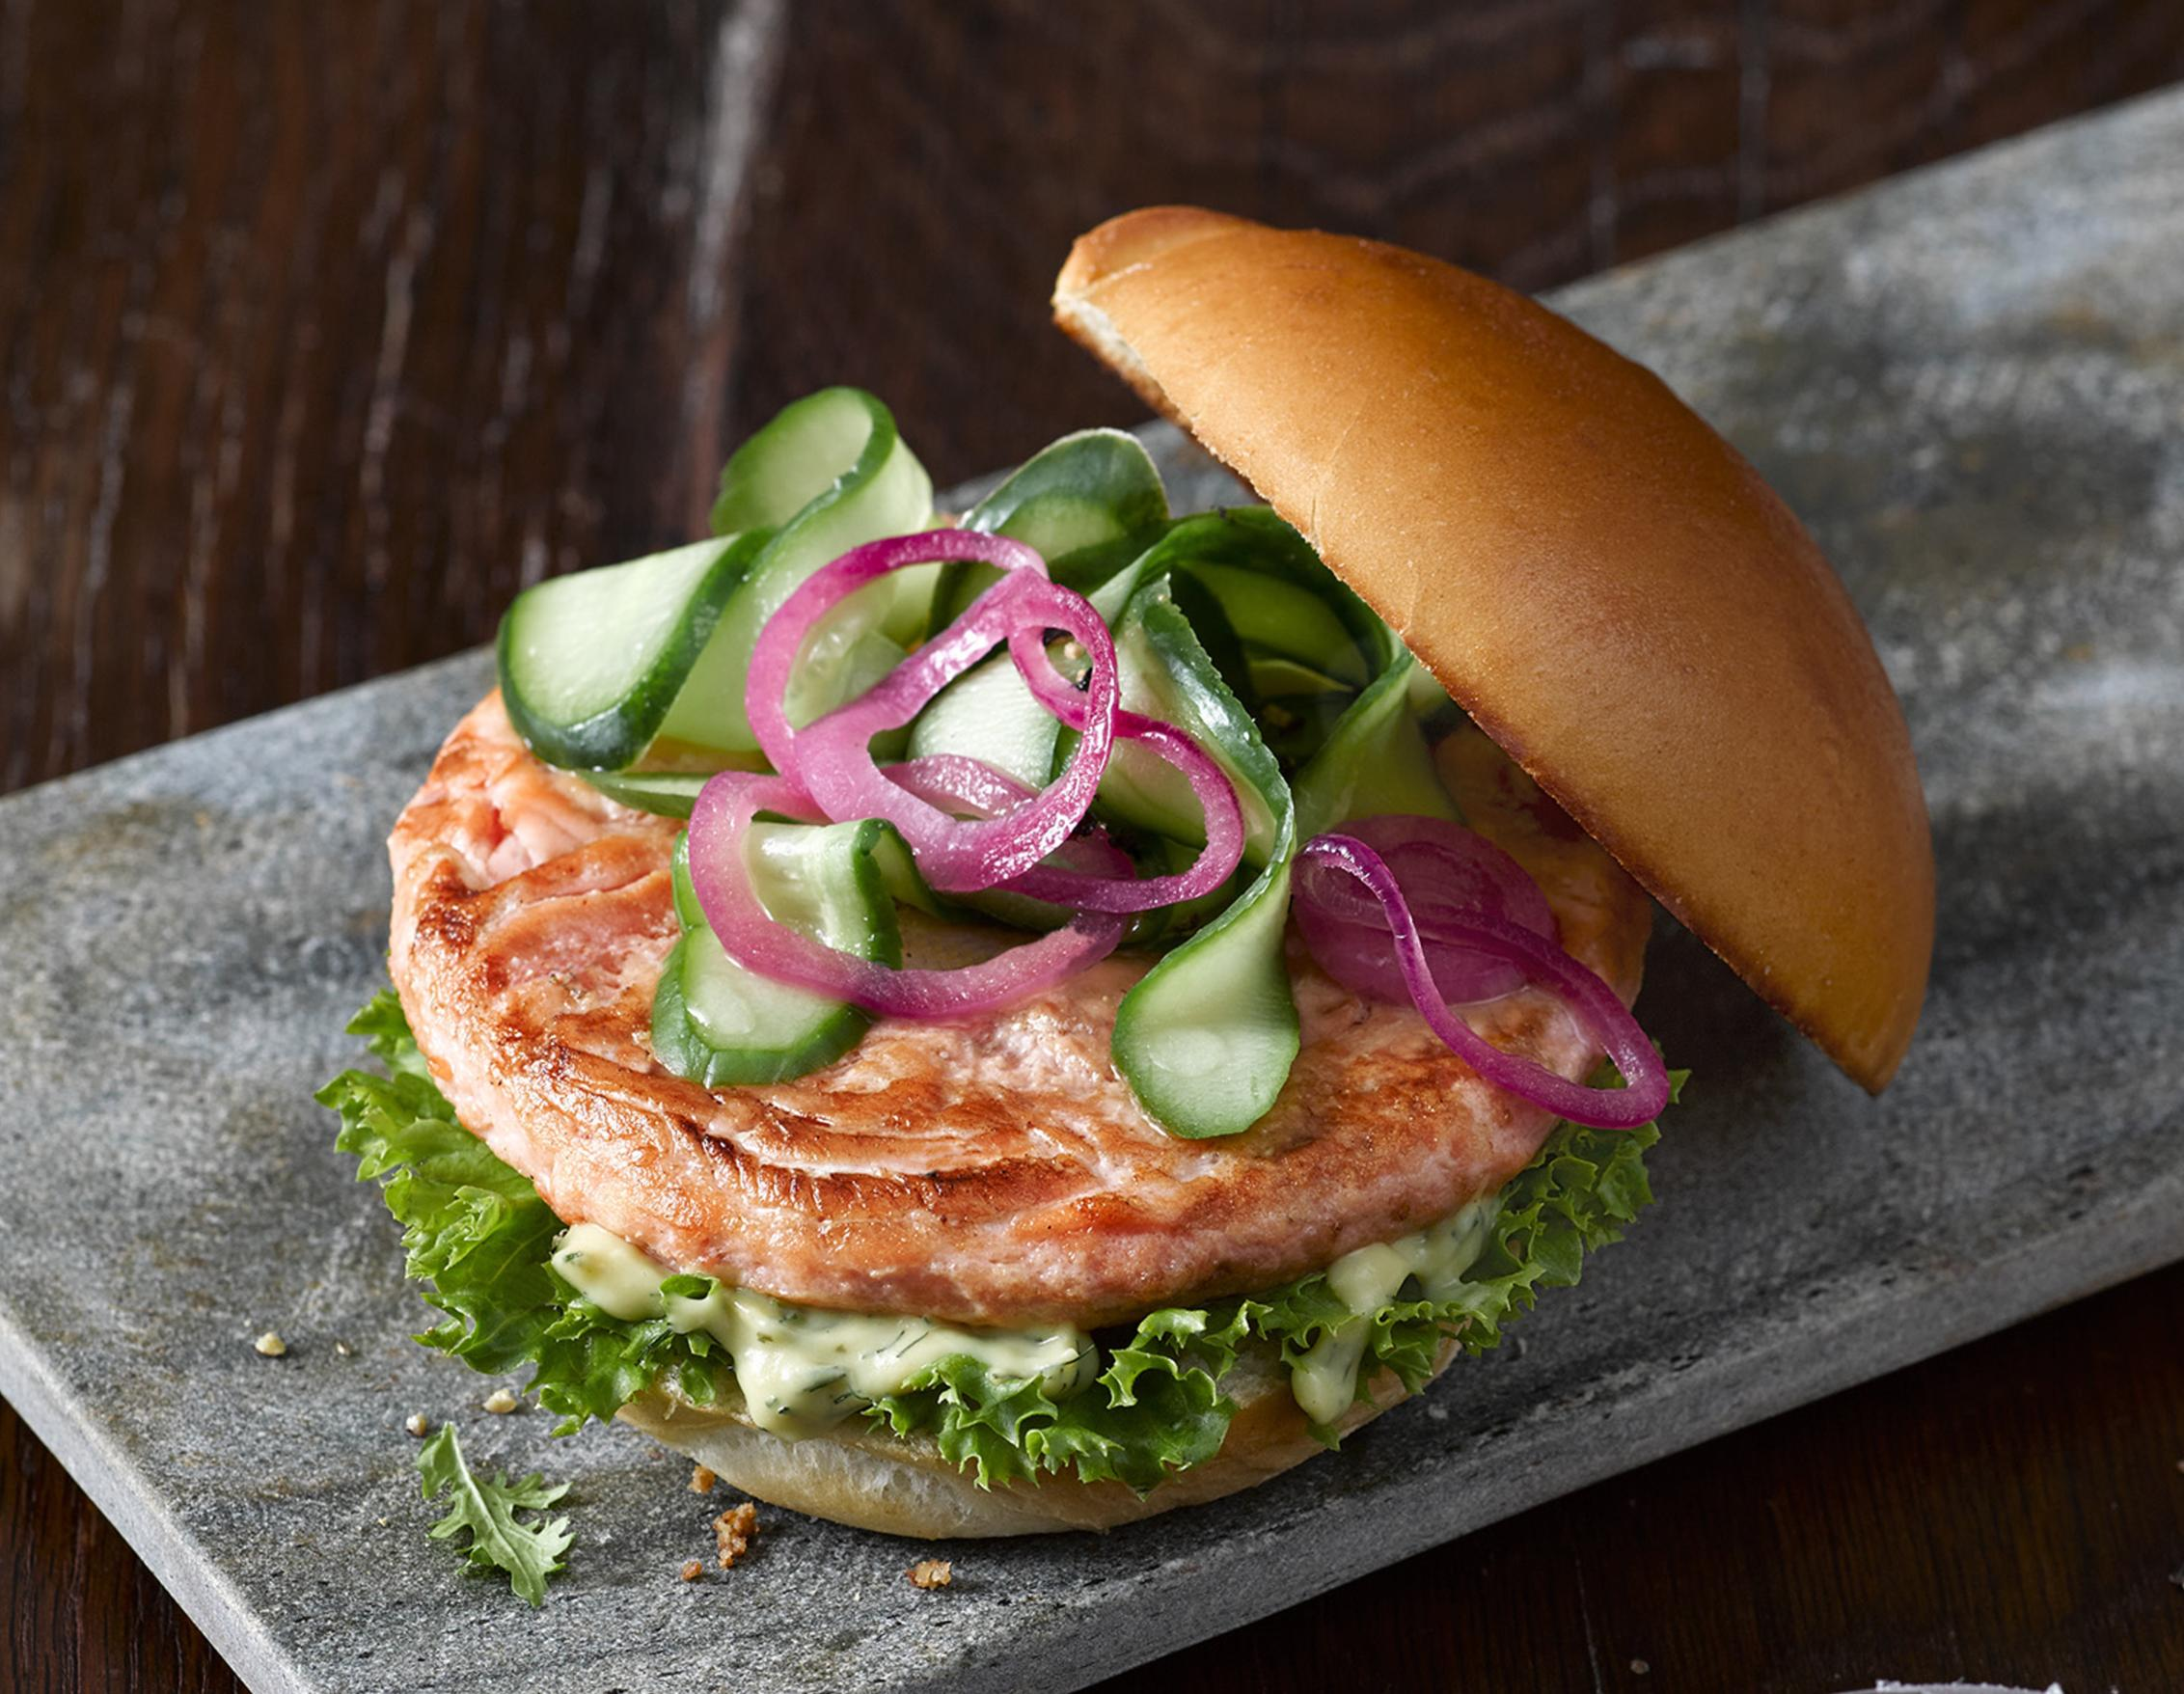 Burger mal ganz anders: Unser Lachs Patty